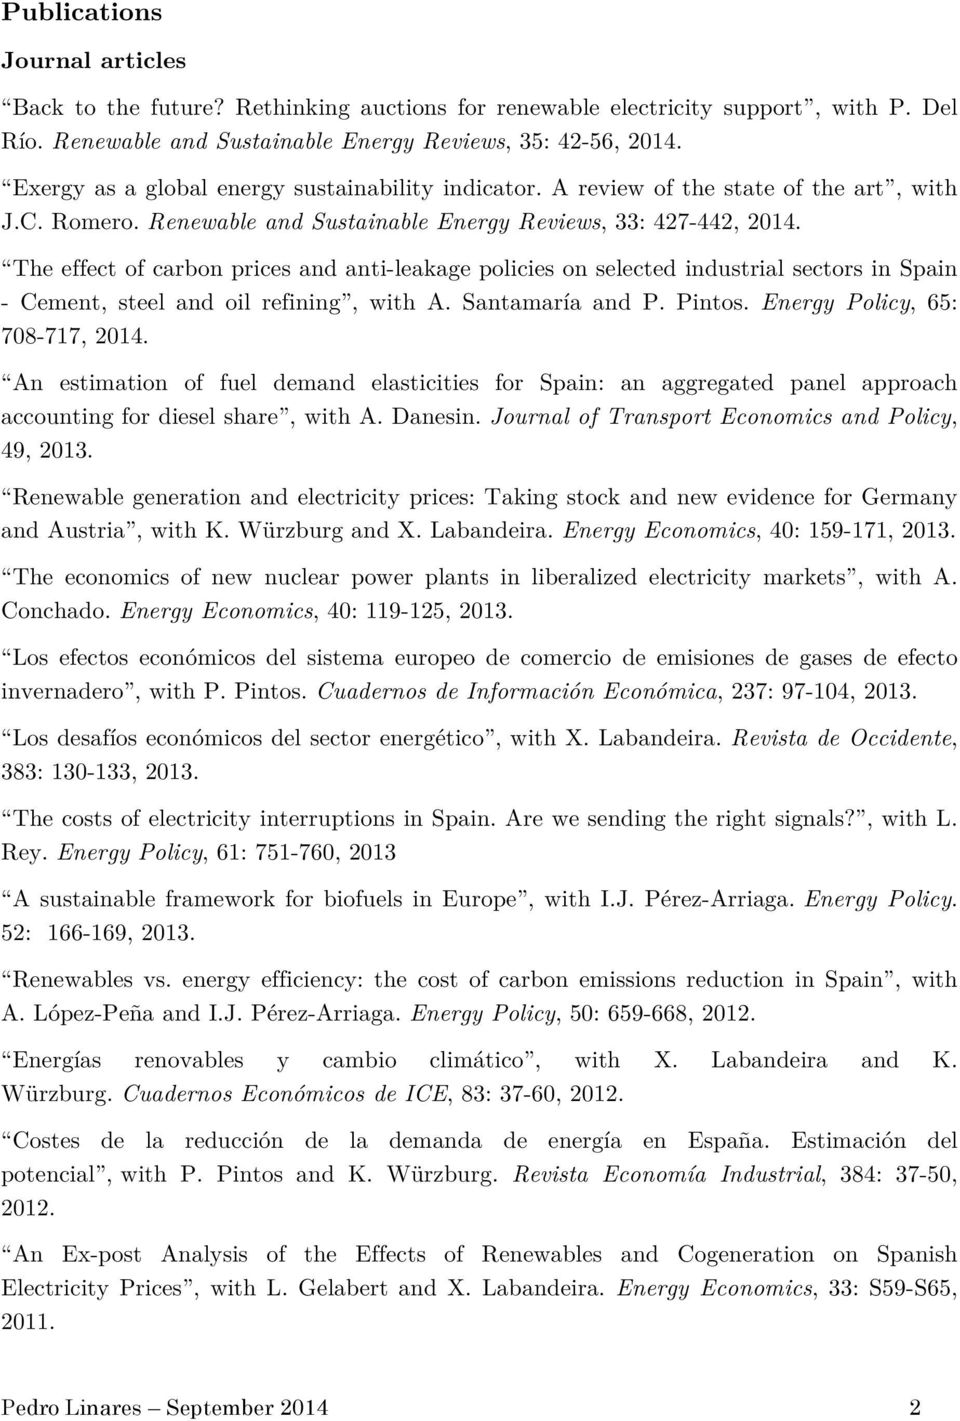 The effect of carbon prices and anti-leakage policies on selected industrial sectors in Spain - Cement, steel and oil refining, with A. Santamaría and P. Pintos. Energy Policy, 65: 708-717, 2014.